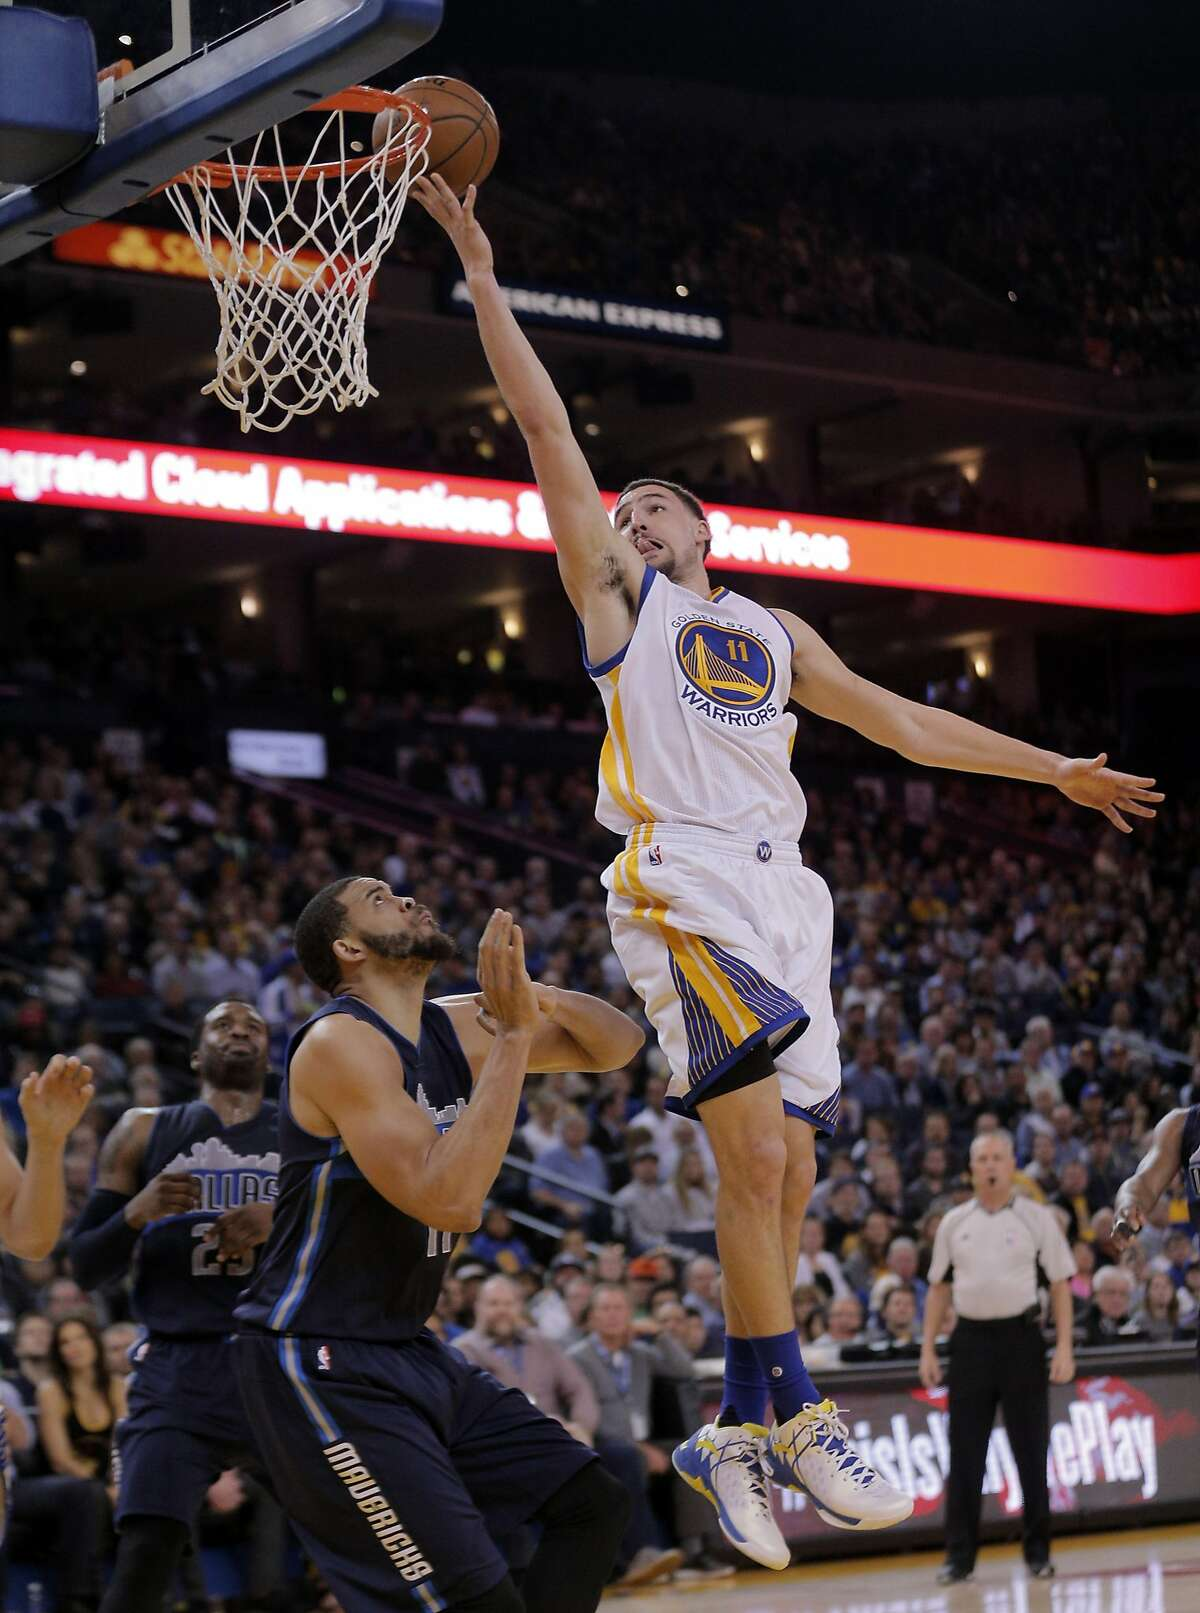 Klay Thompson (11) puts in a lay up in the first half as the Golden State Warriors played the Dallas Mavericks at Oracle Arena in Oakland, Calif., on Wednesday, January 27, 2016.